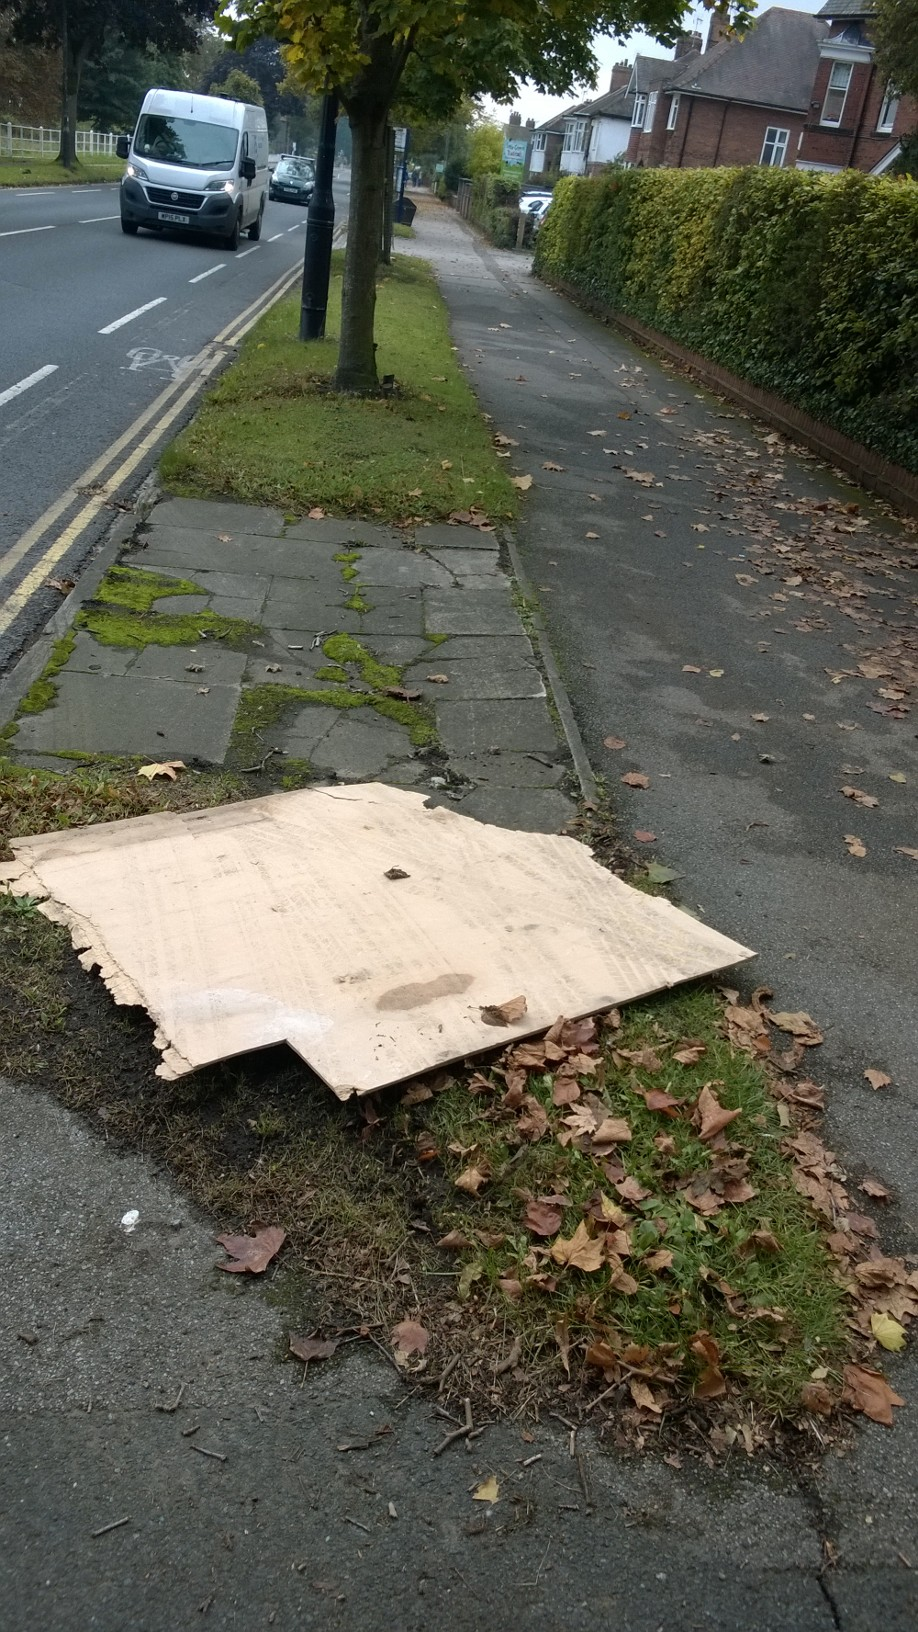 Items dumped on the verge